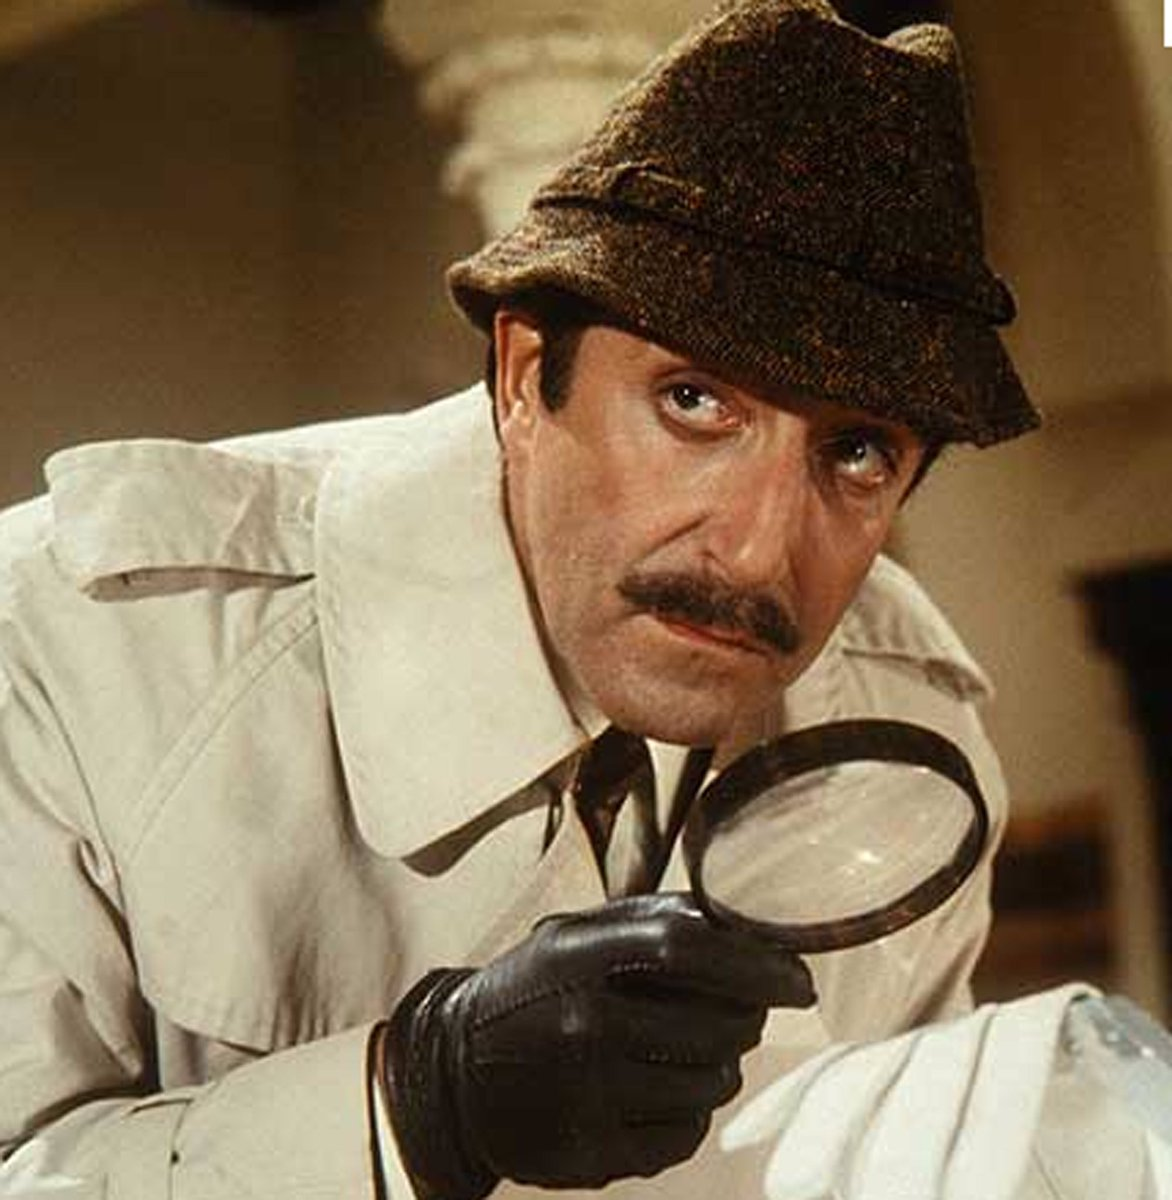 RUMOR: Inspector Clousseau could be fired soon. #Resist